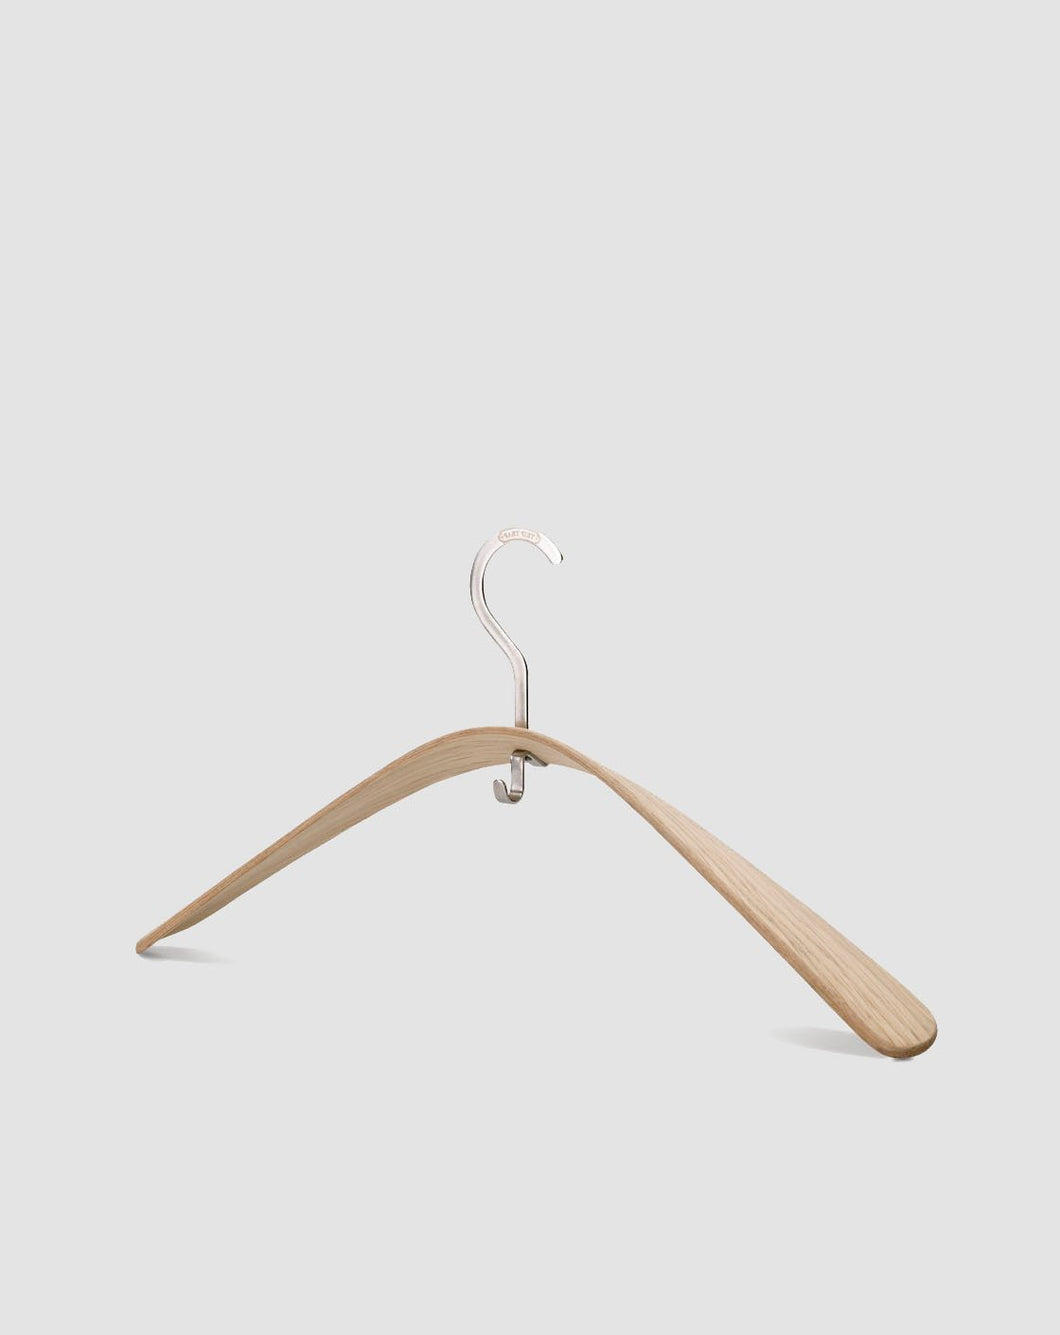 Skagerak, Pilot Coat Hanger, Oak, Stainless Steel